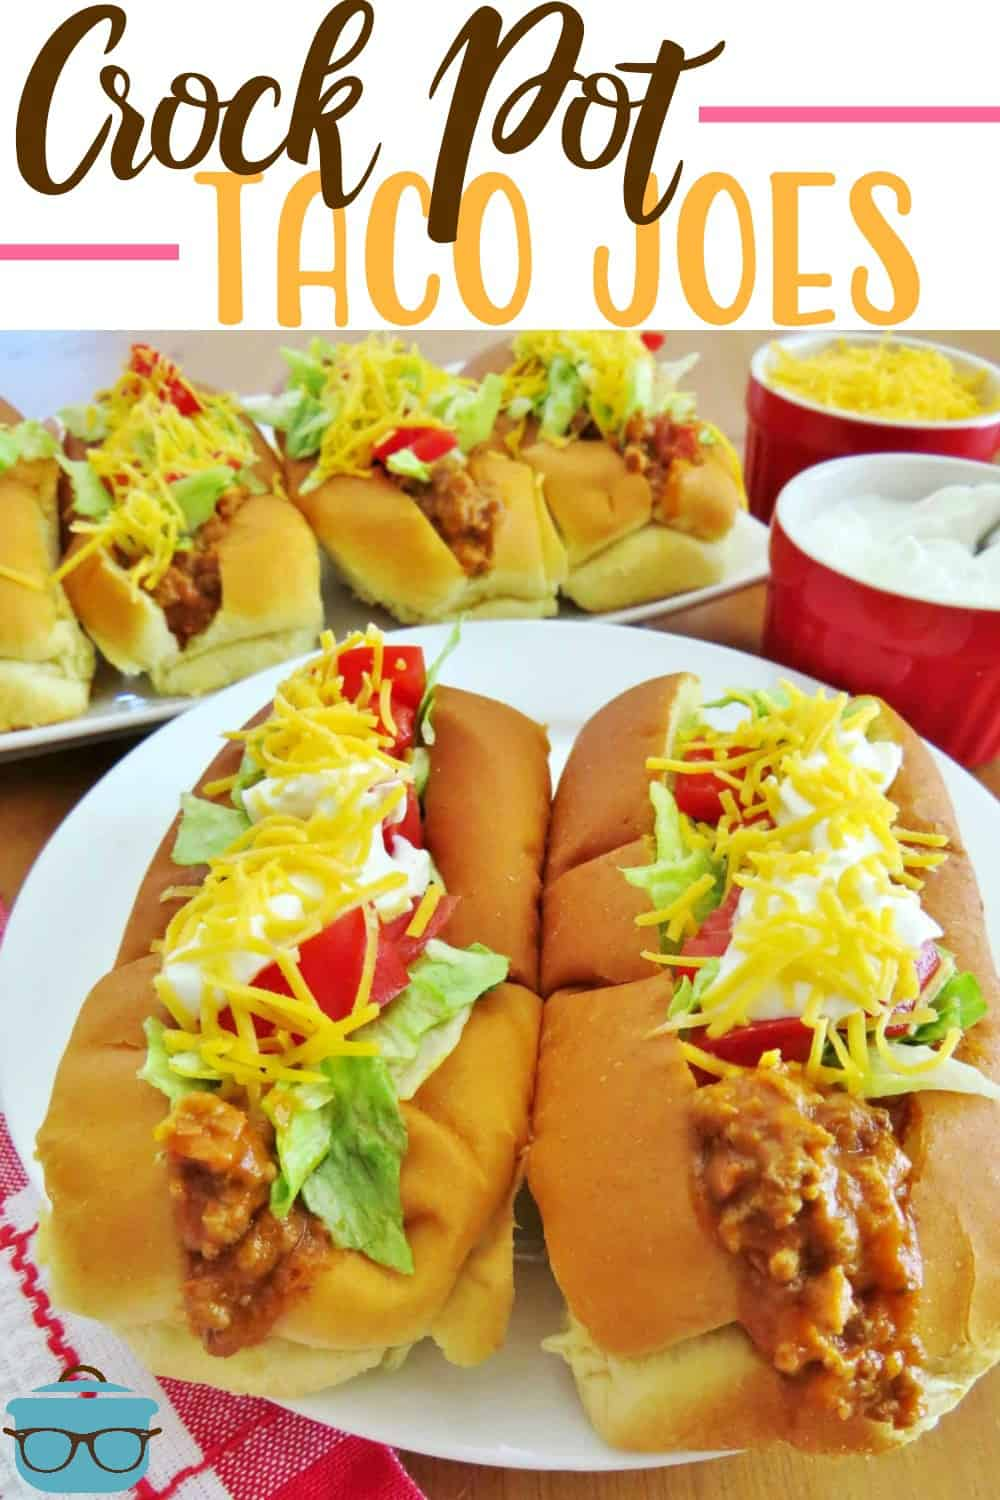 Crock Pot Taco Joes are like sloppy joes with a taco twist. This filling is amazing in tacos and burritos or on tostadas. A huge family favorite! #crockpottacojoes #dinner